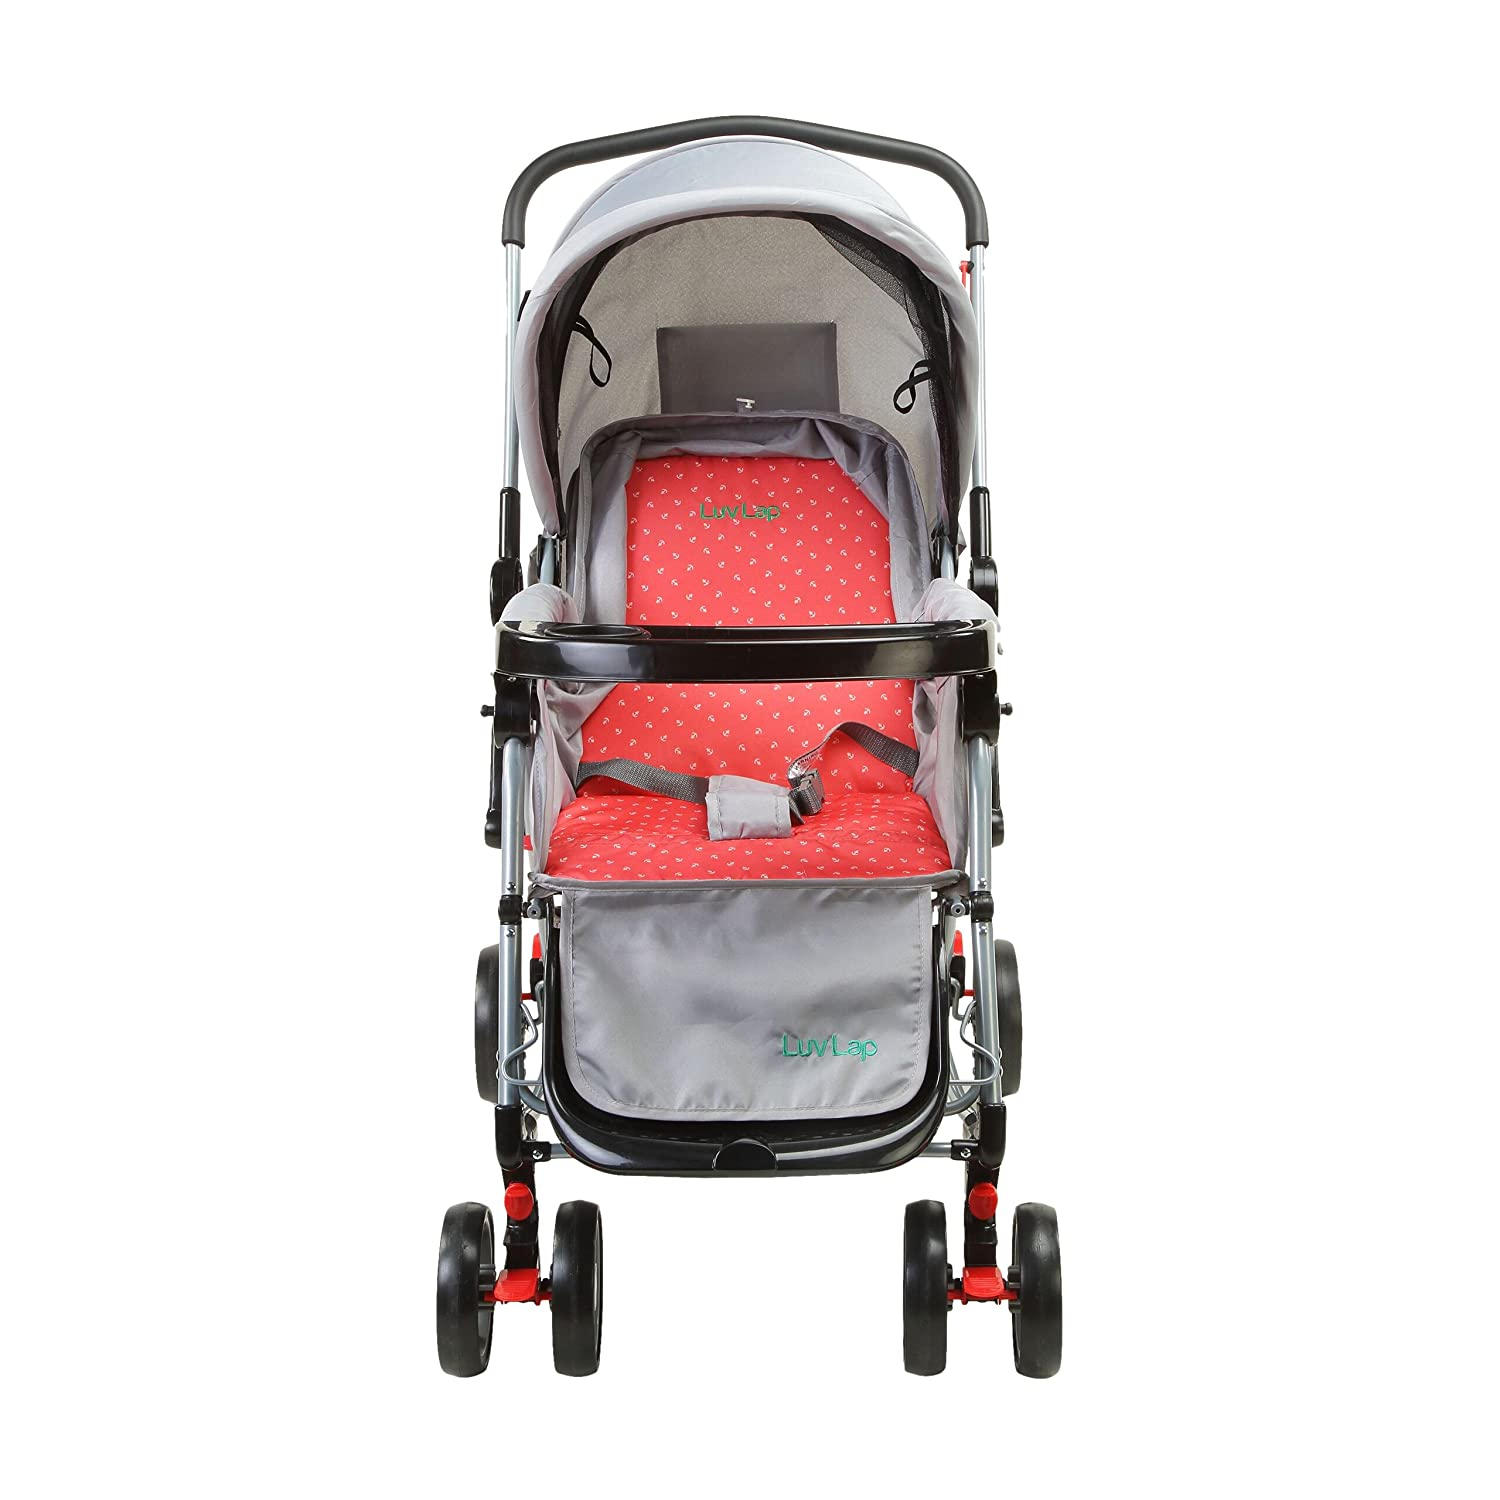 Cappuccino 2-in-1 Baby Stroller C120 Red